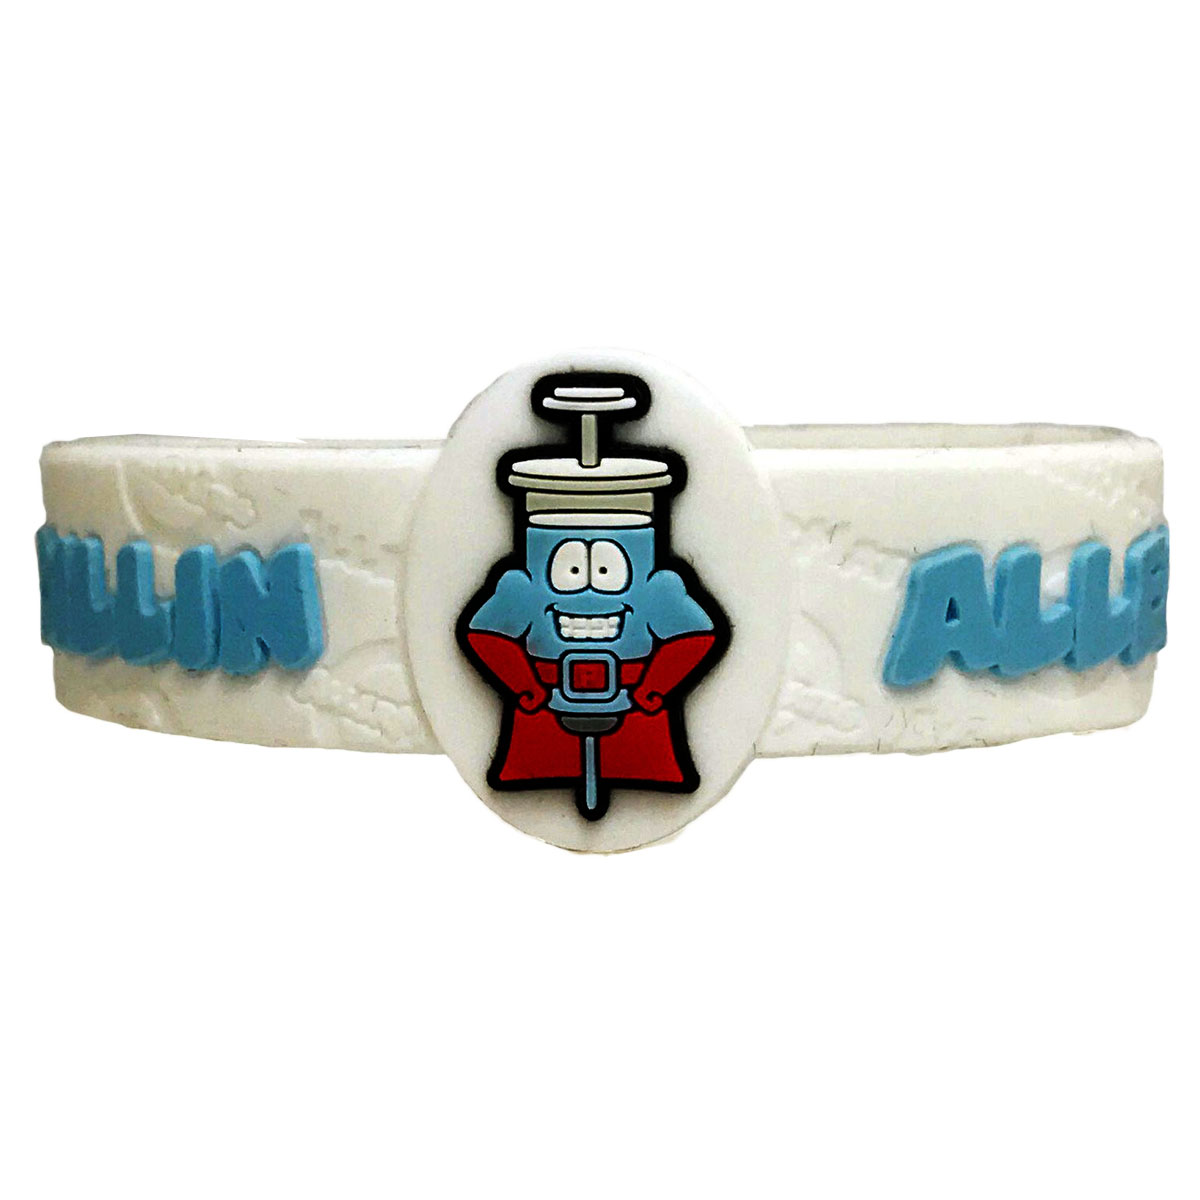 Children's Medical Alert Bracelet for Penicillin Allergies AWABR10131